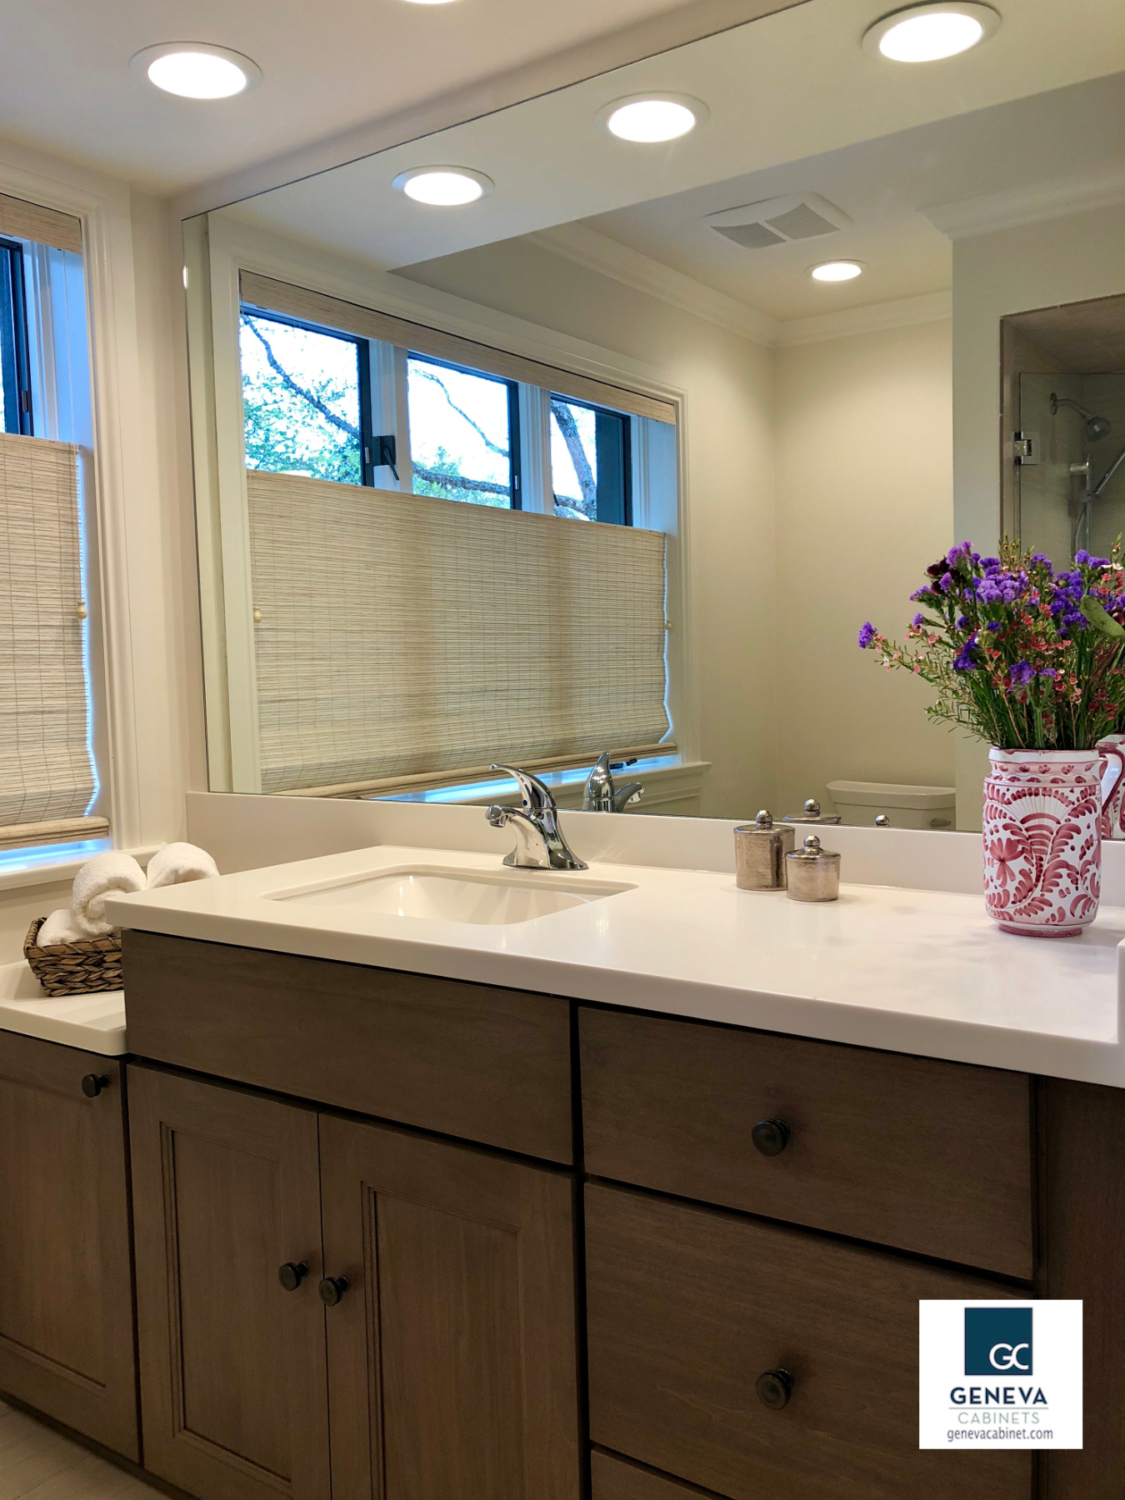 Shiloh cabinetry designed to fit hi low height